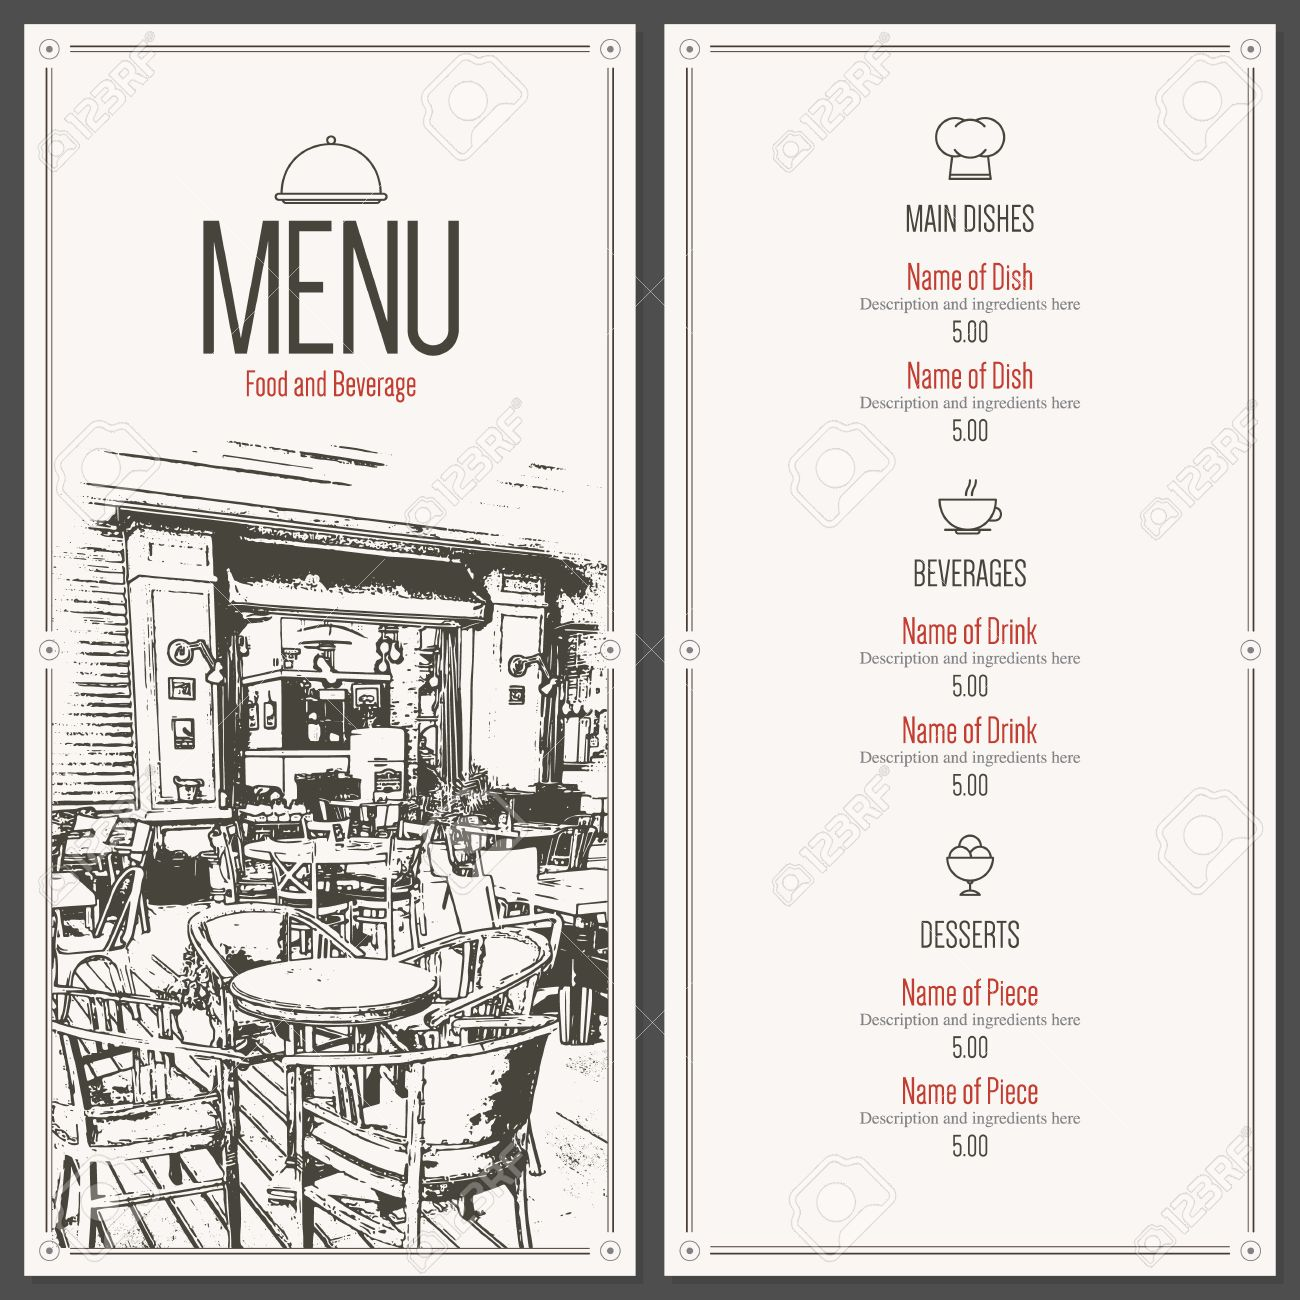 Retro Restaurant Menu Design With A Sketch Pictures Royalty Free Cliparts Vectors And Stock Illustration Image 54504839